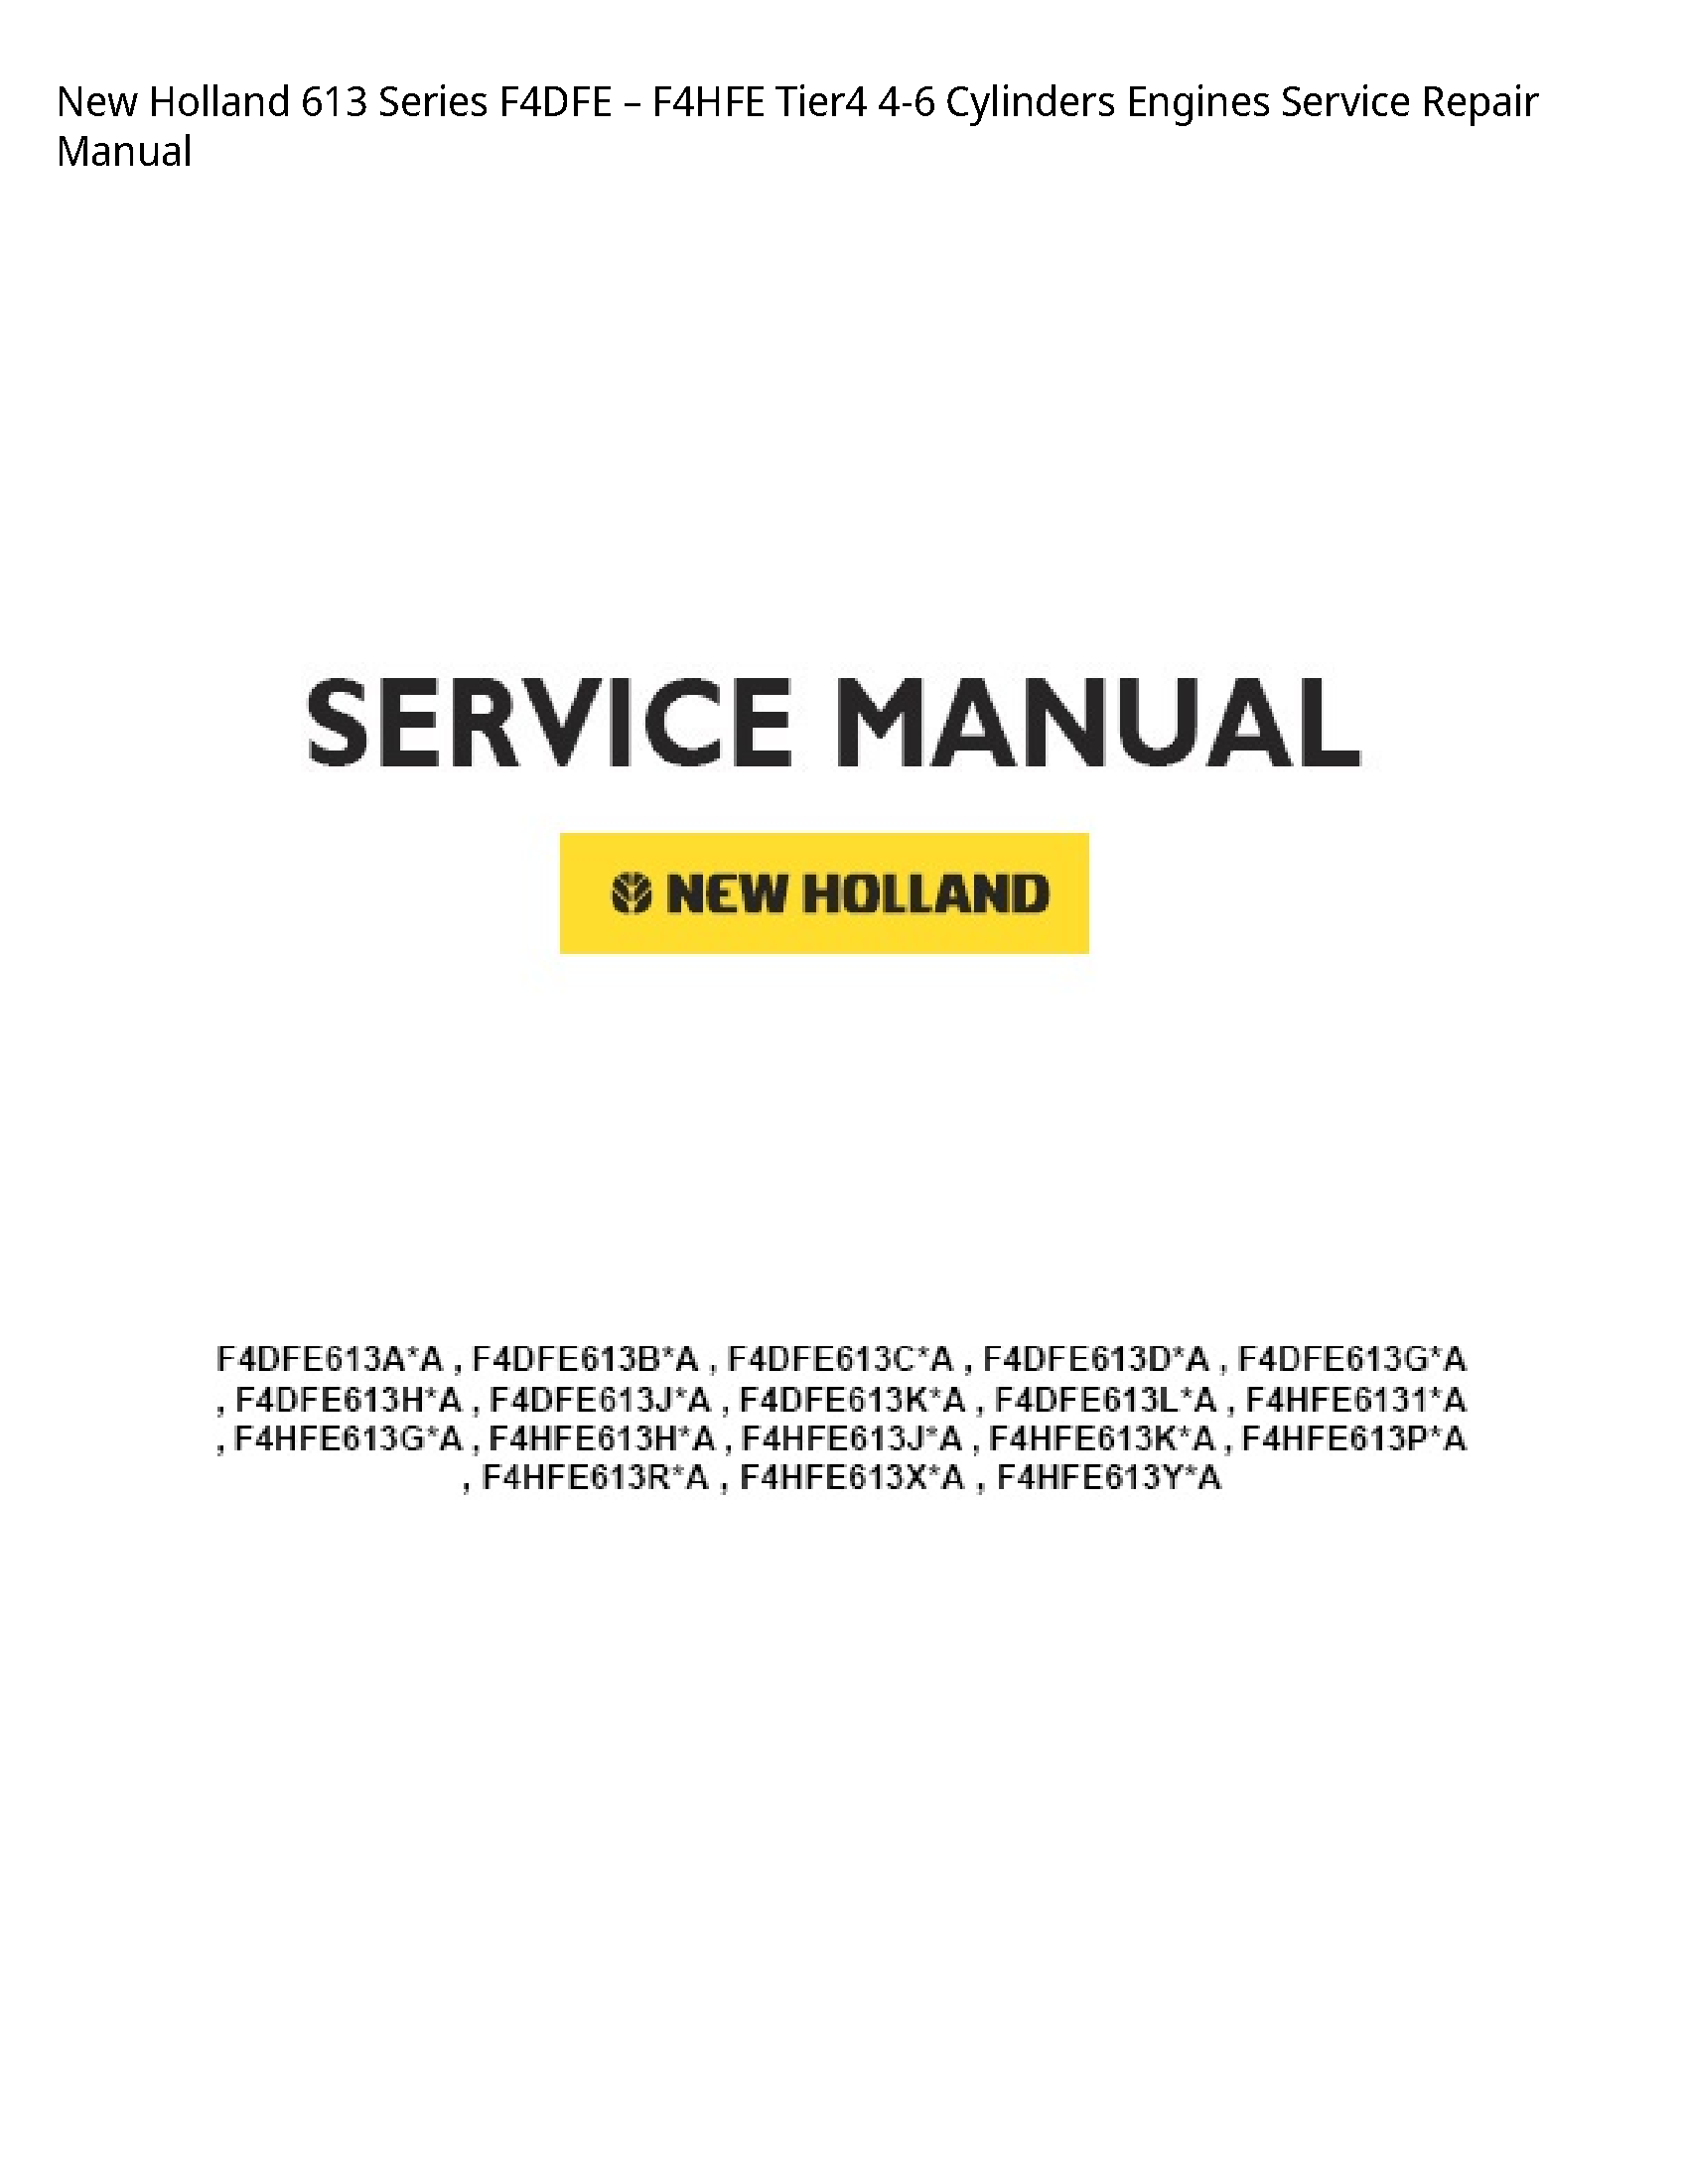 New Holland 613 Series Cylinders Engines manual